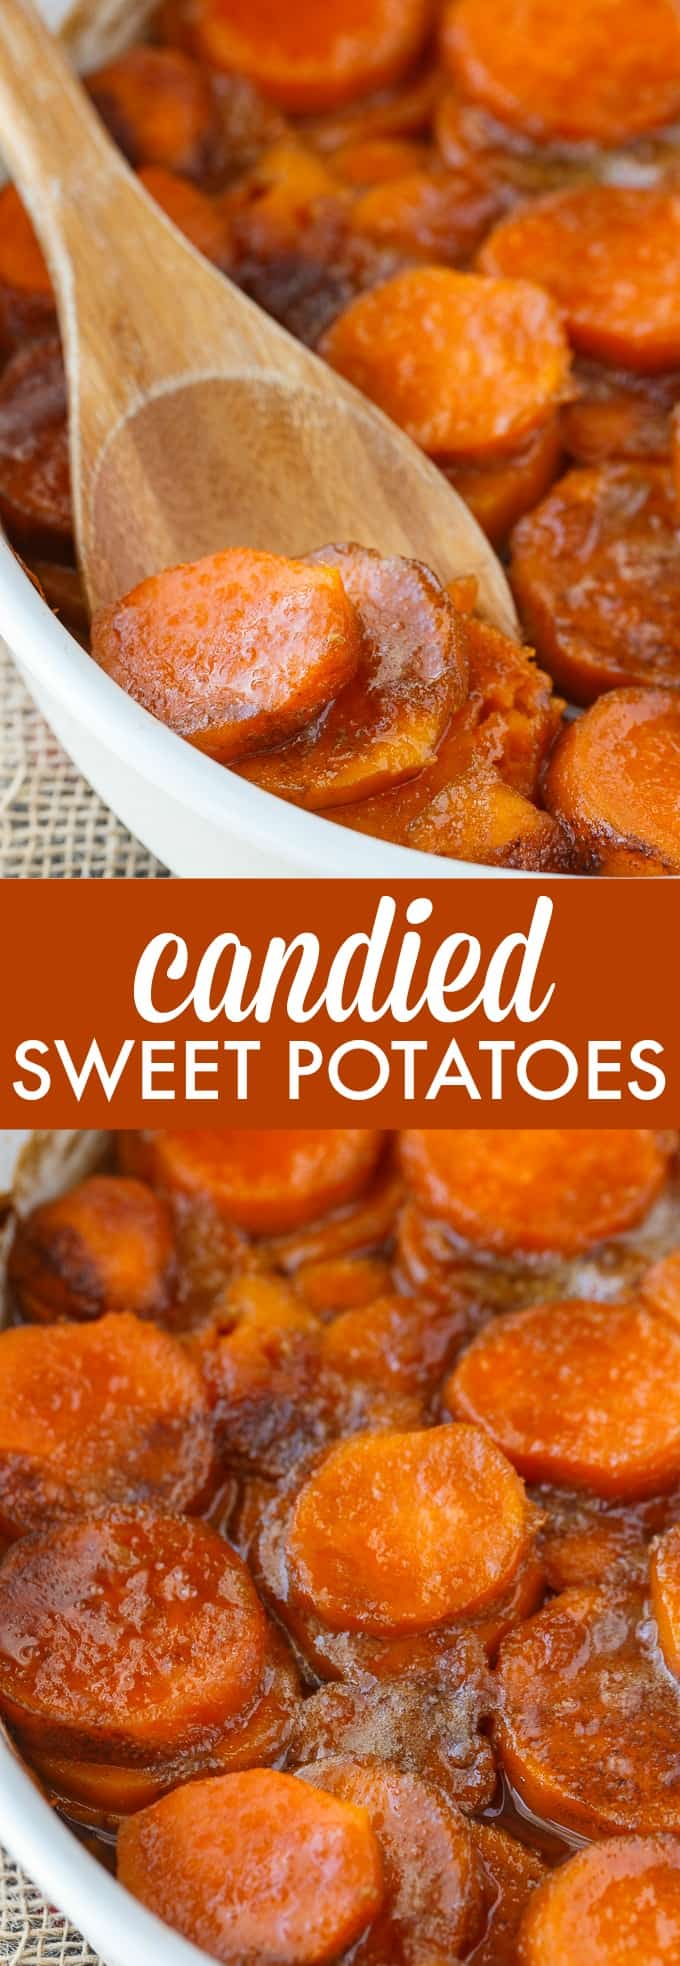 Candied Sweet Potatoes - An easy side dish recipe that tastes like a dessert. Tender sweet potato rounds are covered in a rich, buttery glaze.